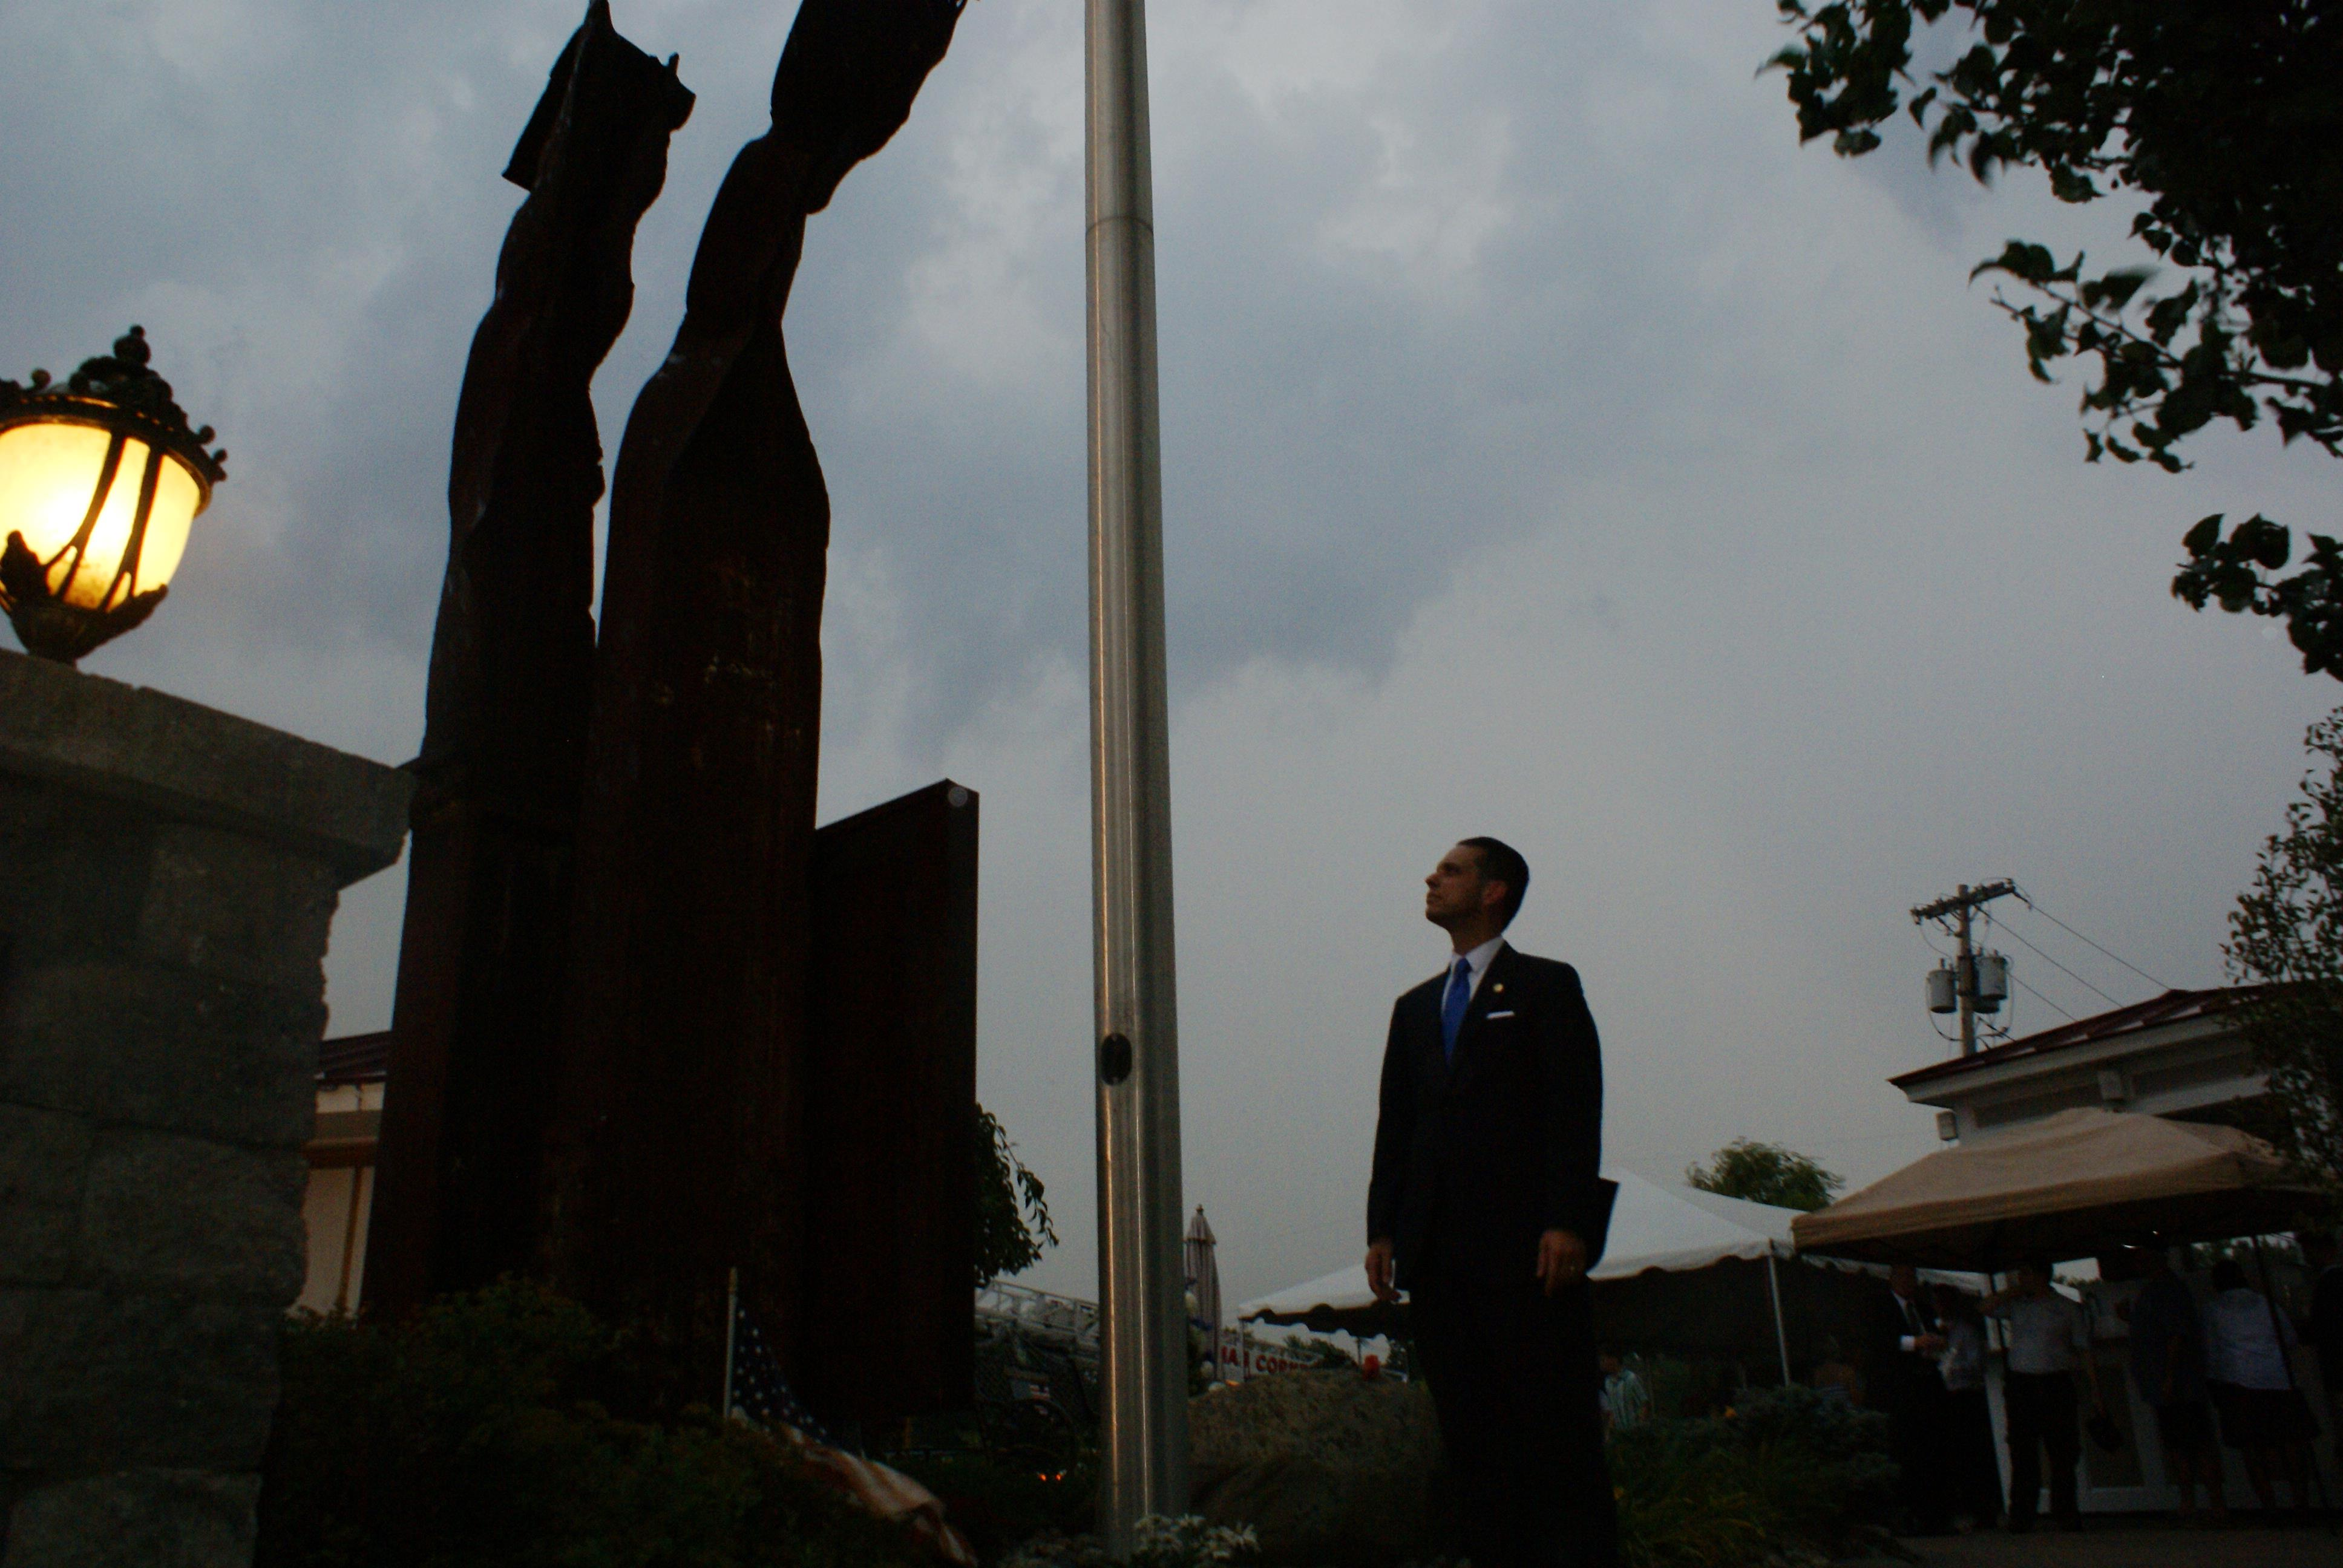 Assemblyman Angelo Santabarbara reflects while looking at the 9-11 Memorial statue located at the Water's Edge Lighthouse.